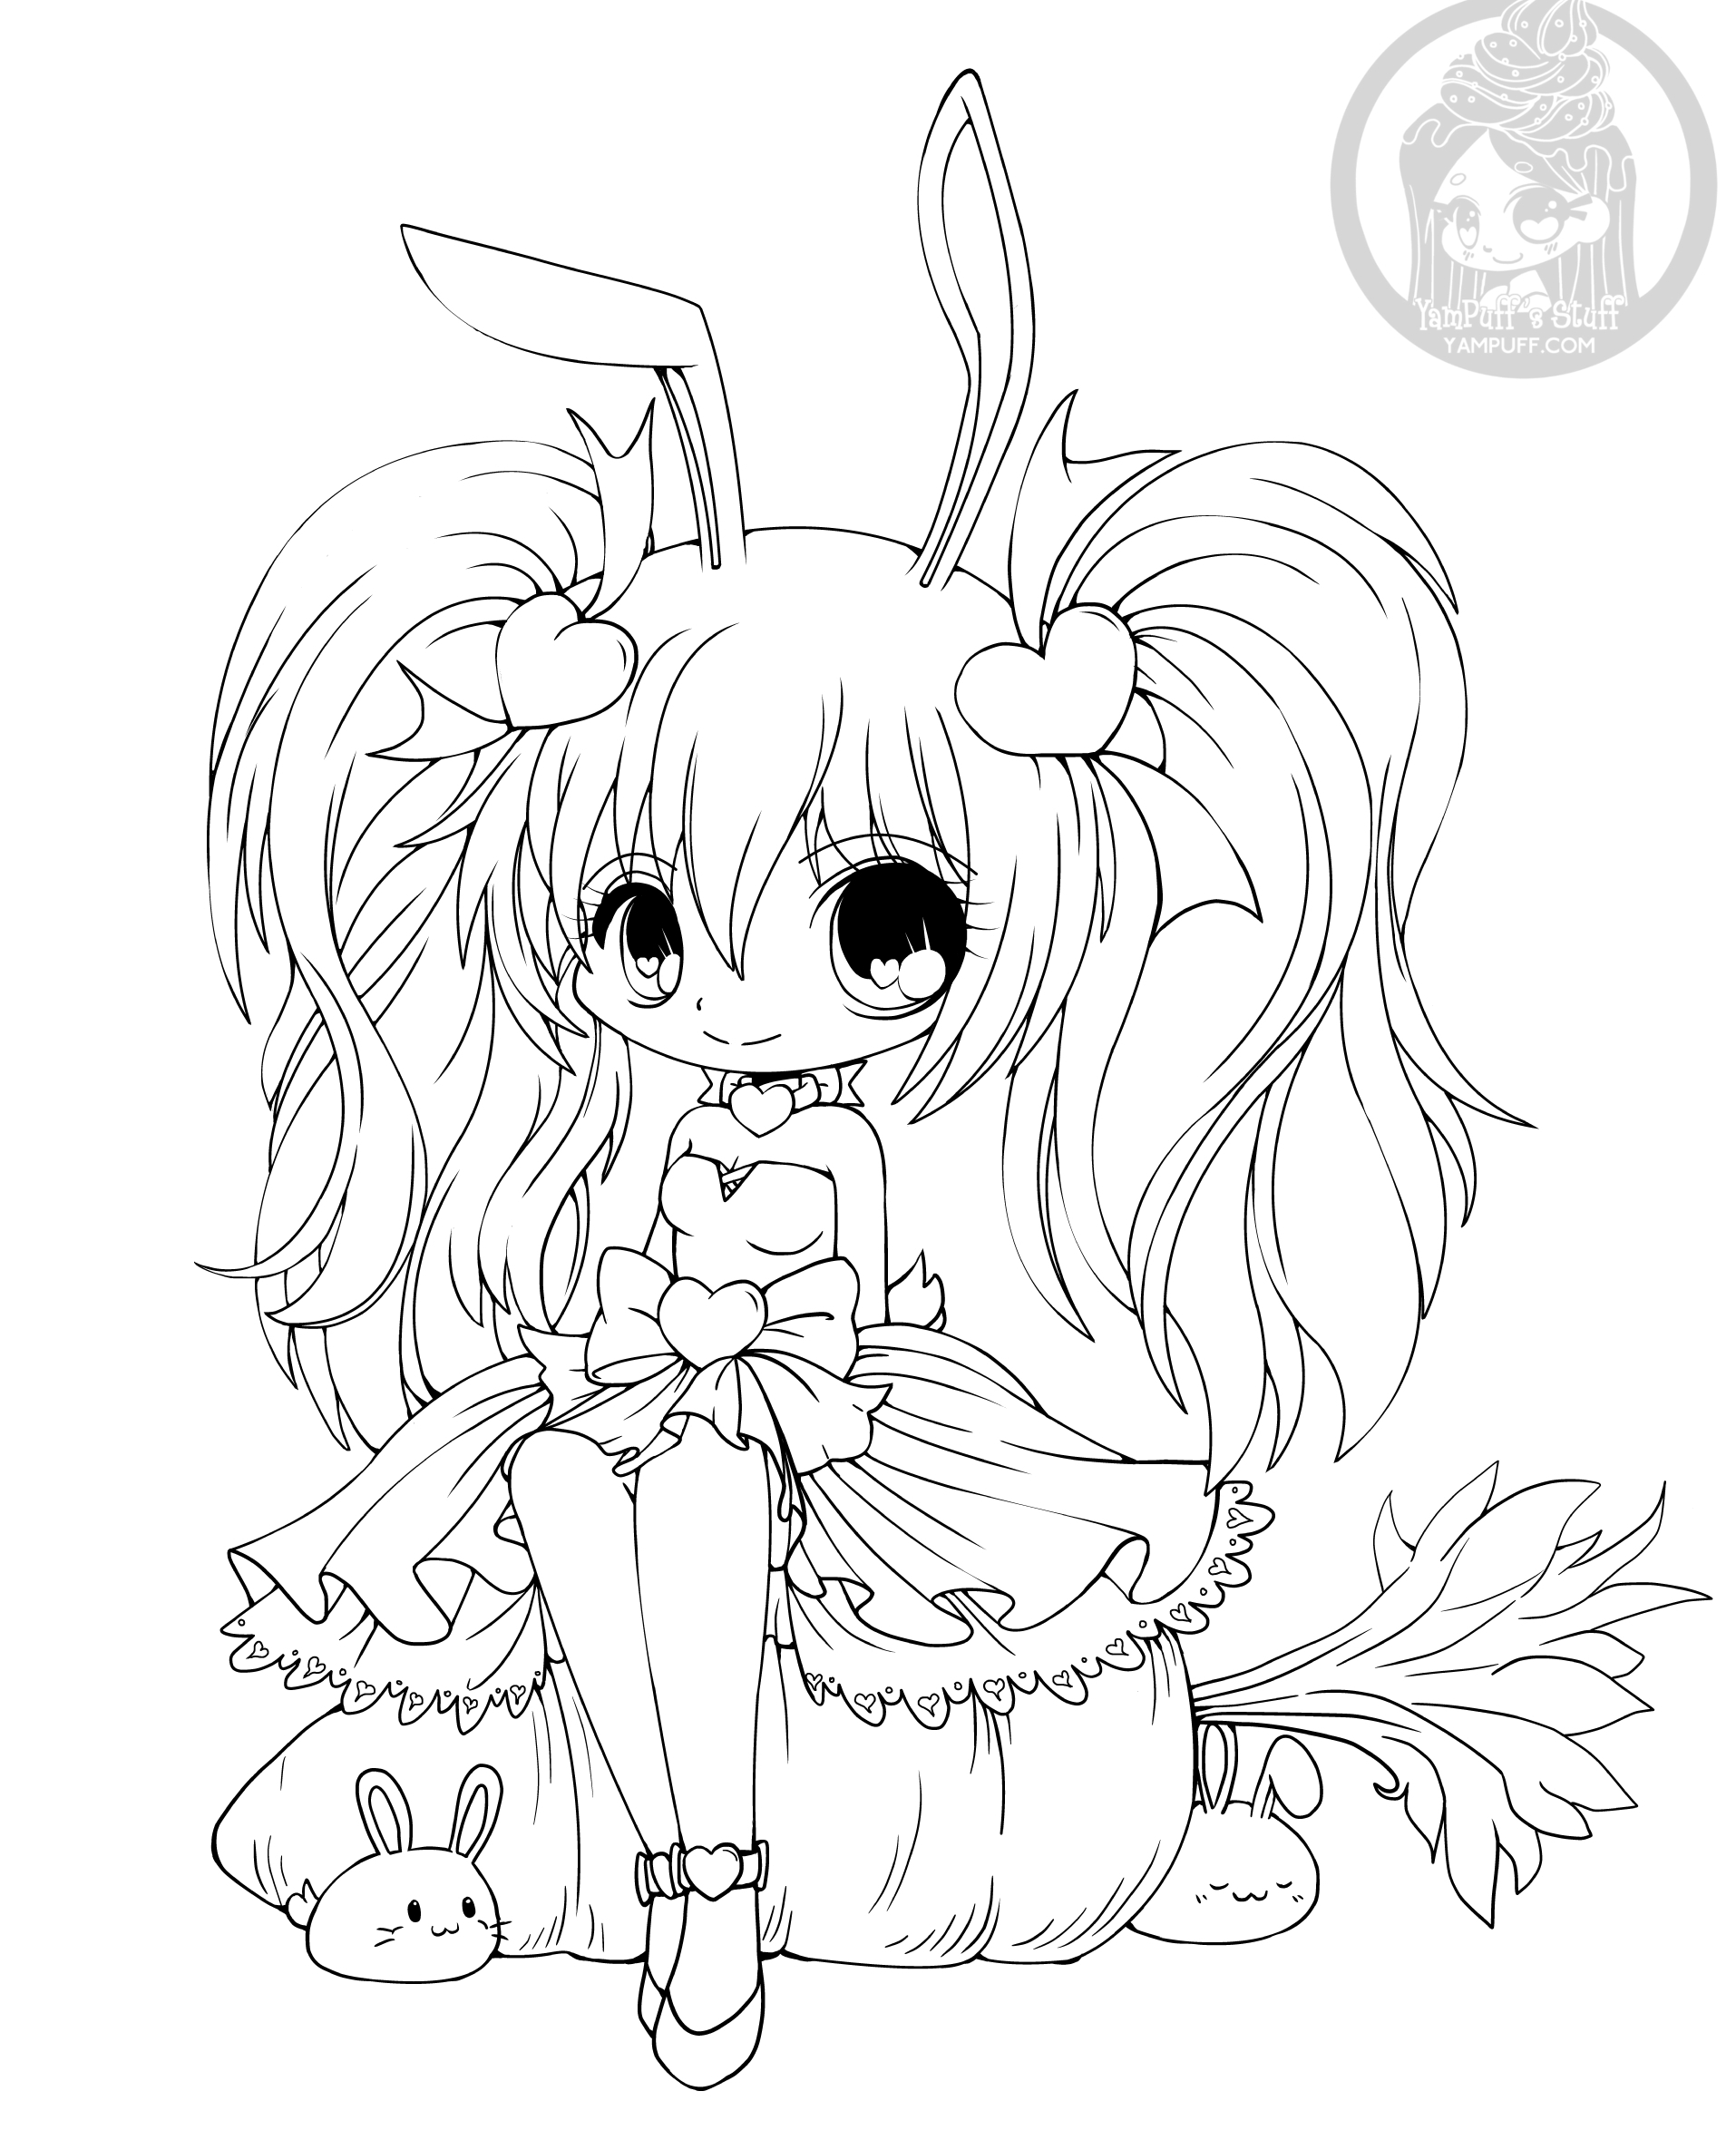 chibi bunny coloring pages chibi hopping bunny coloring pages kids play color bunny coloring chibi pages